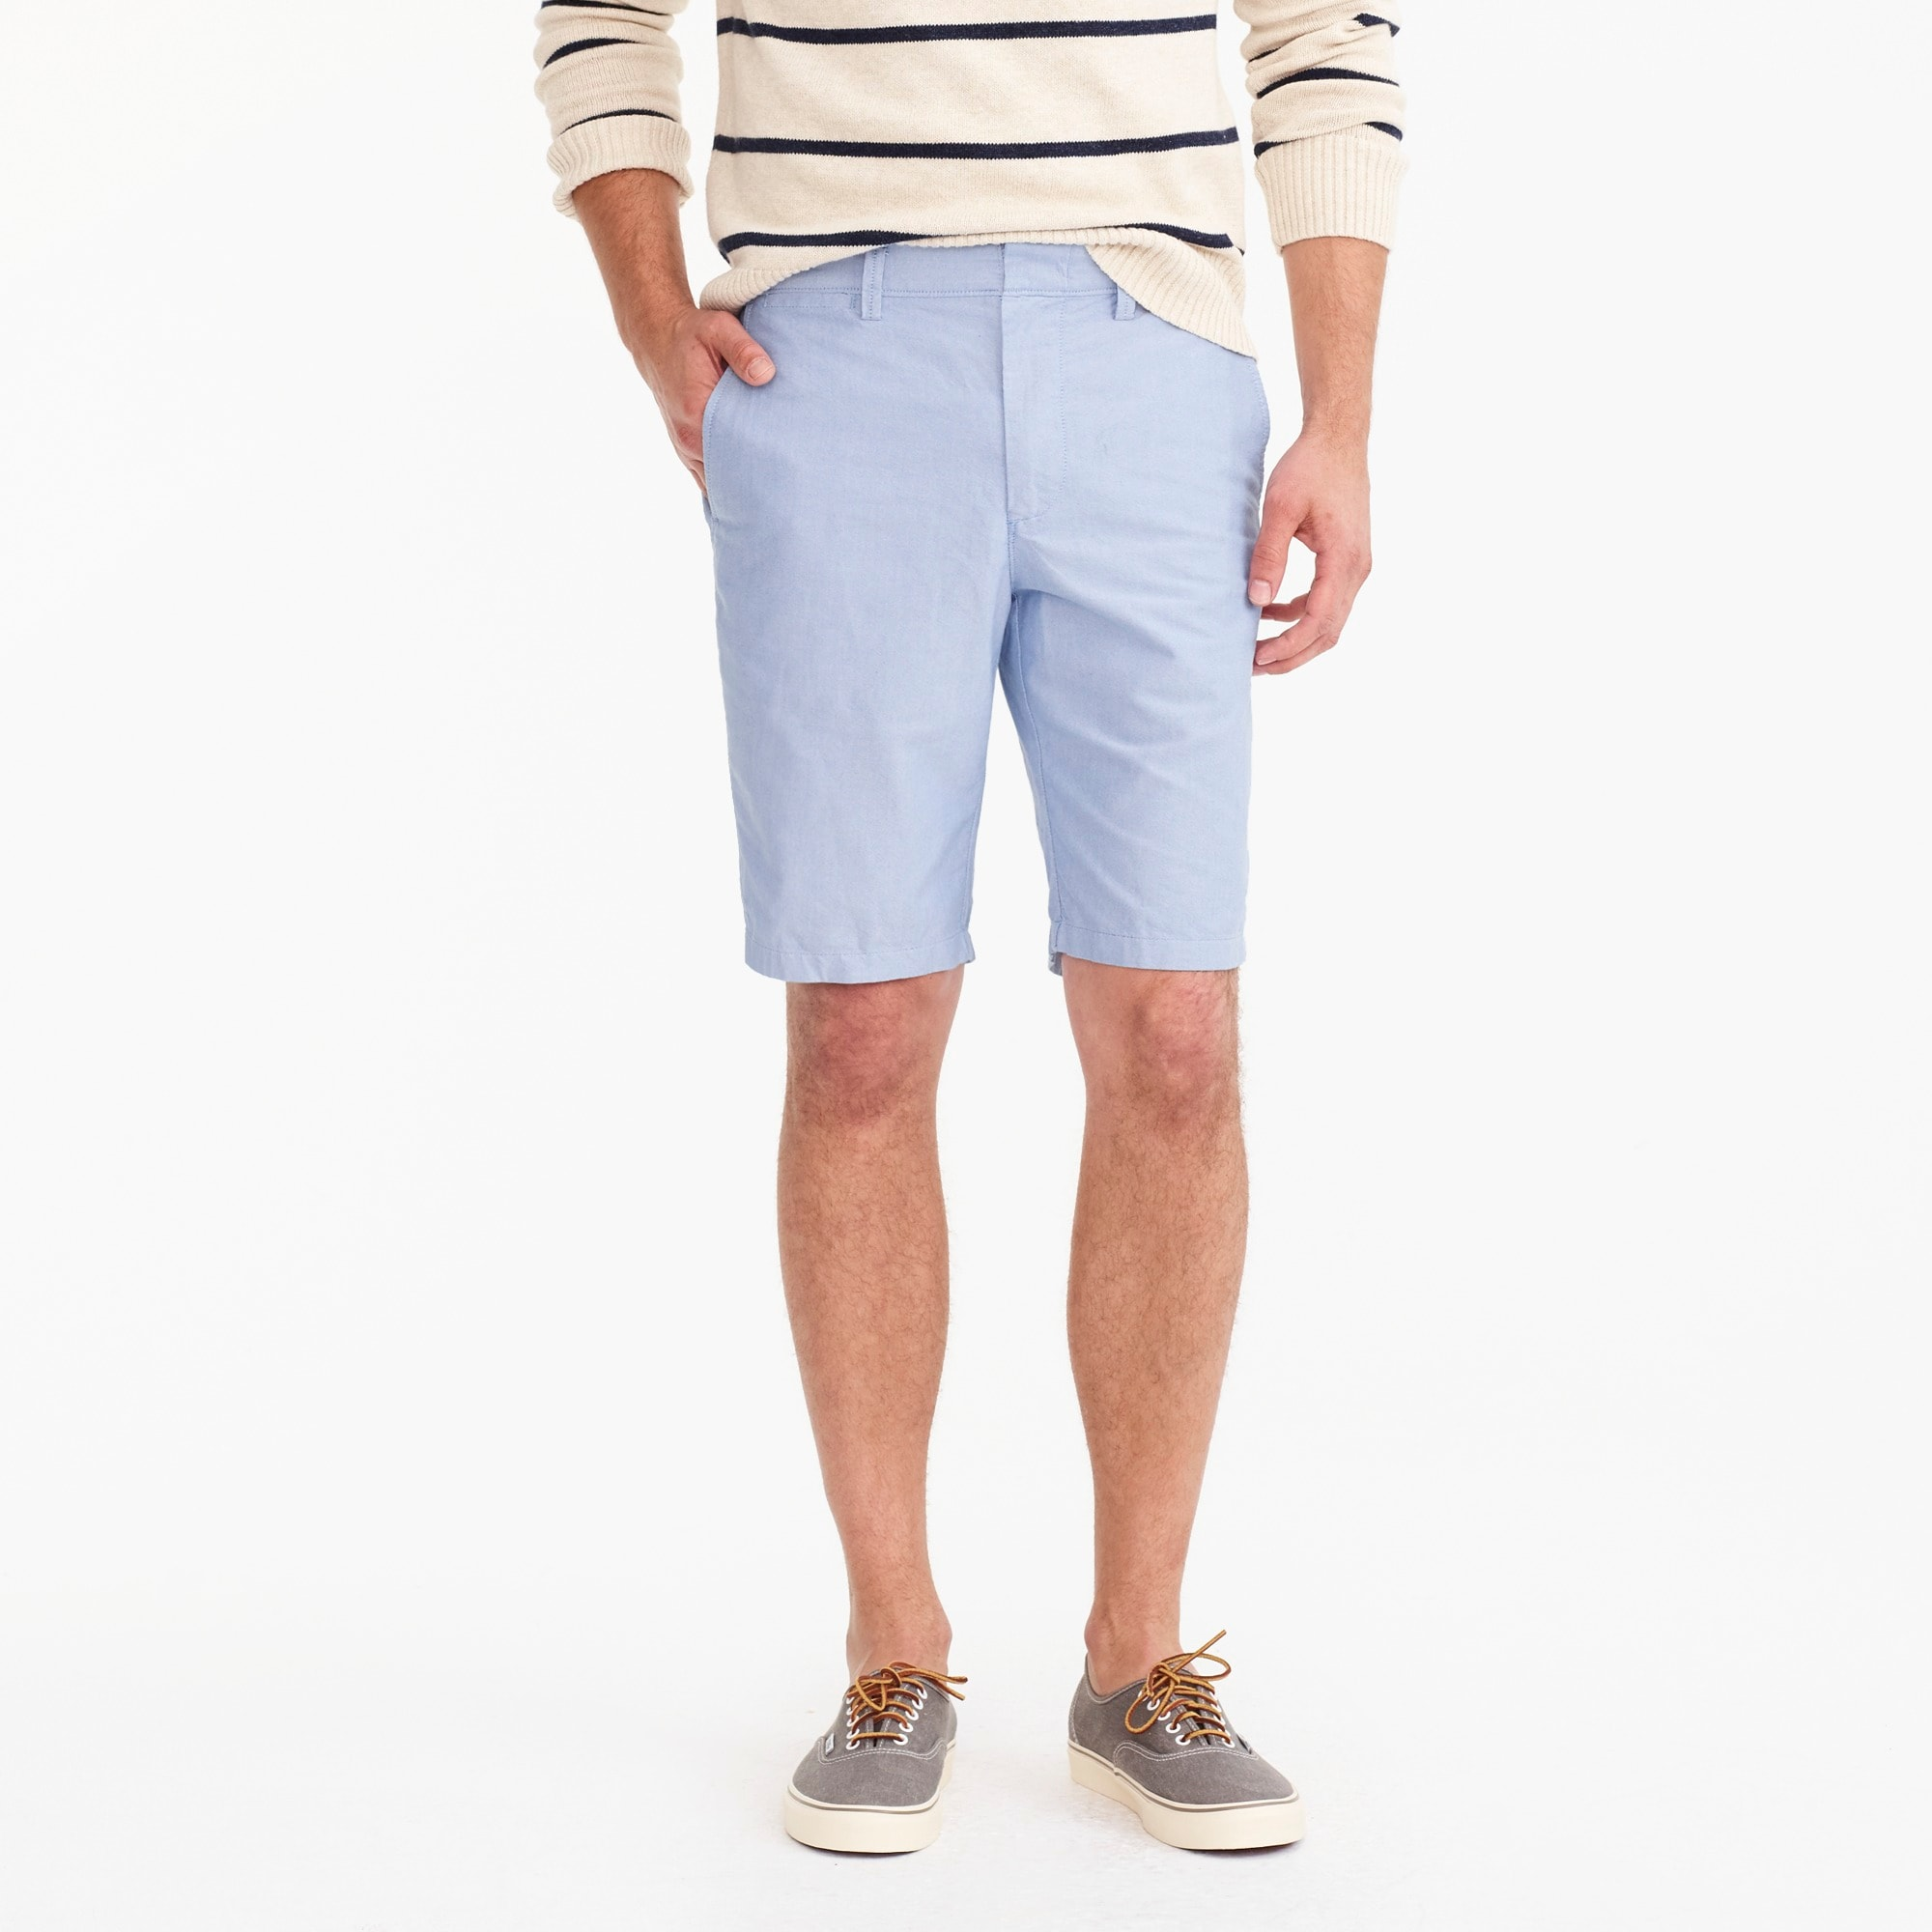 men's 10.5 oxford short - men's shorts